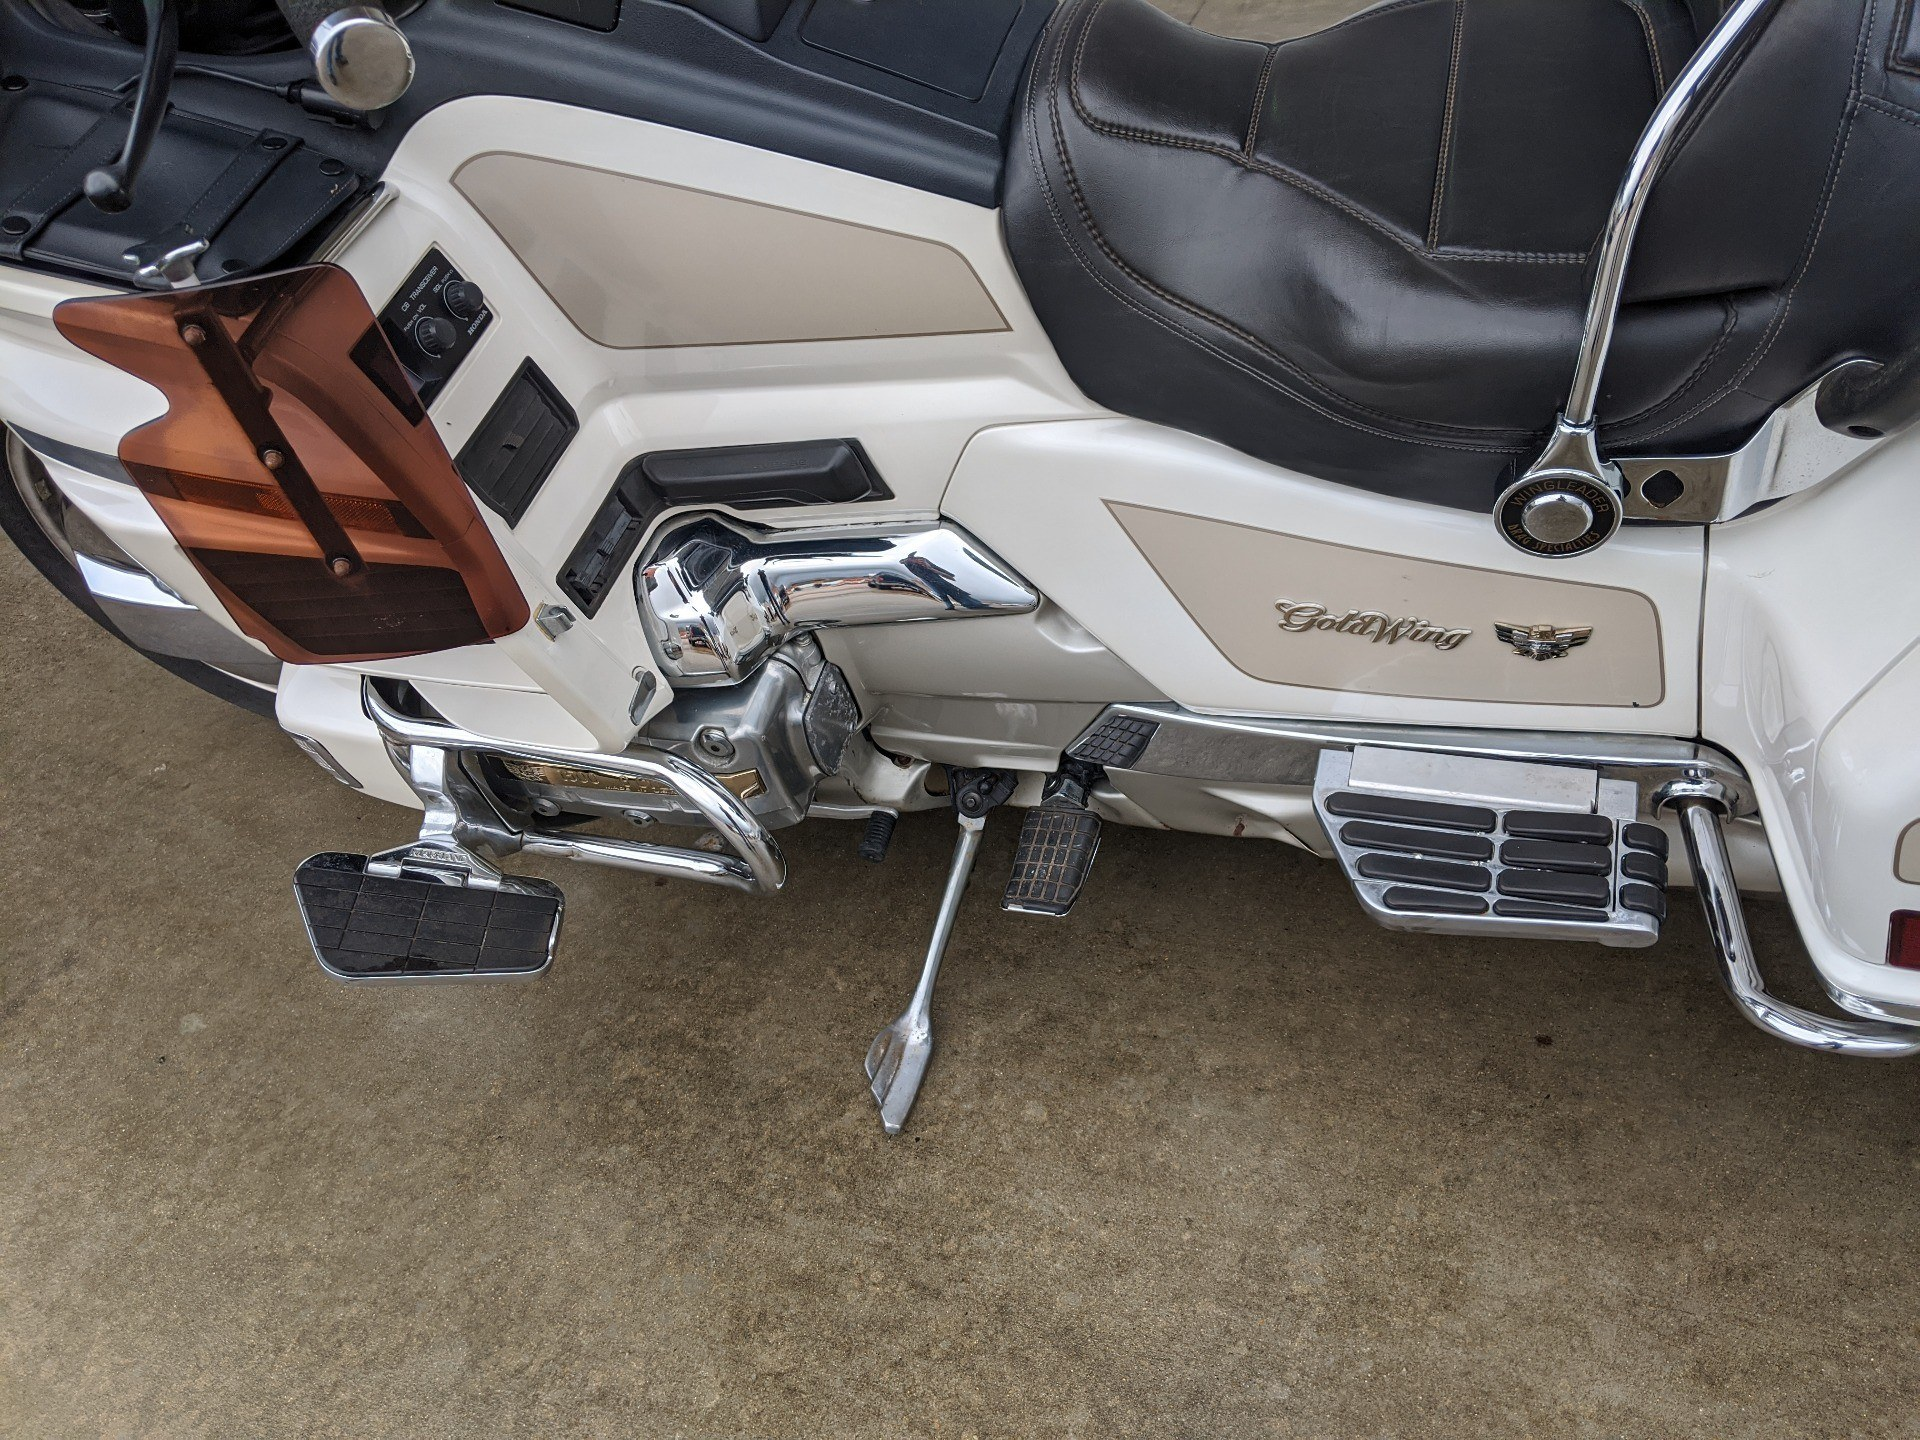 1998 Honda Gold Wing SE in Monroe, Louisiana - Photo 20